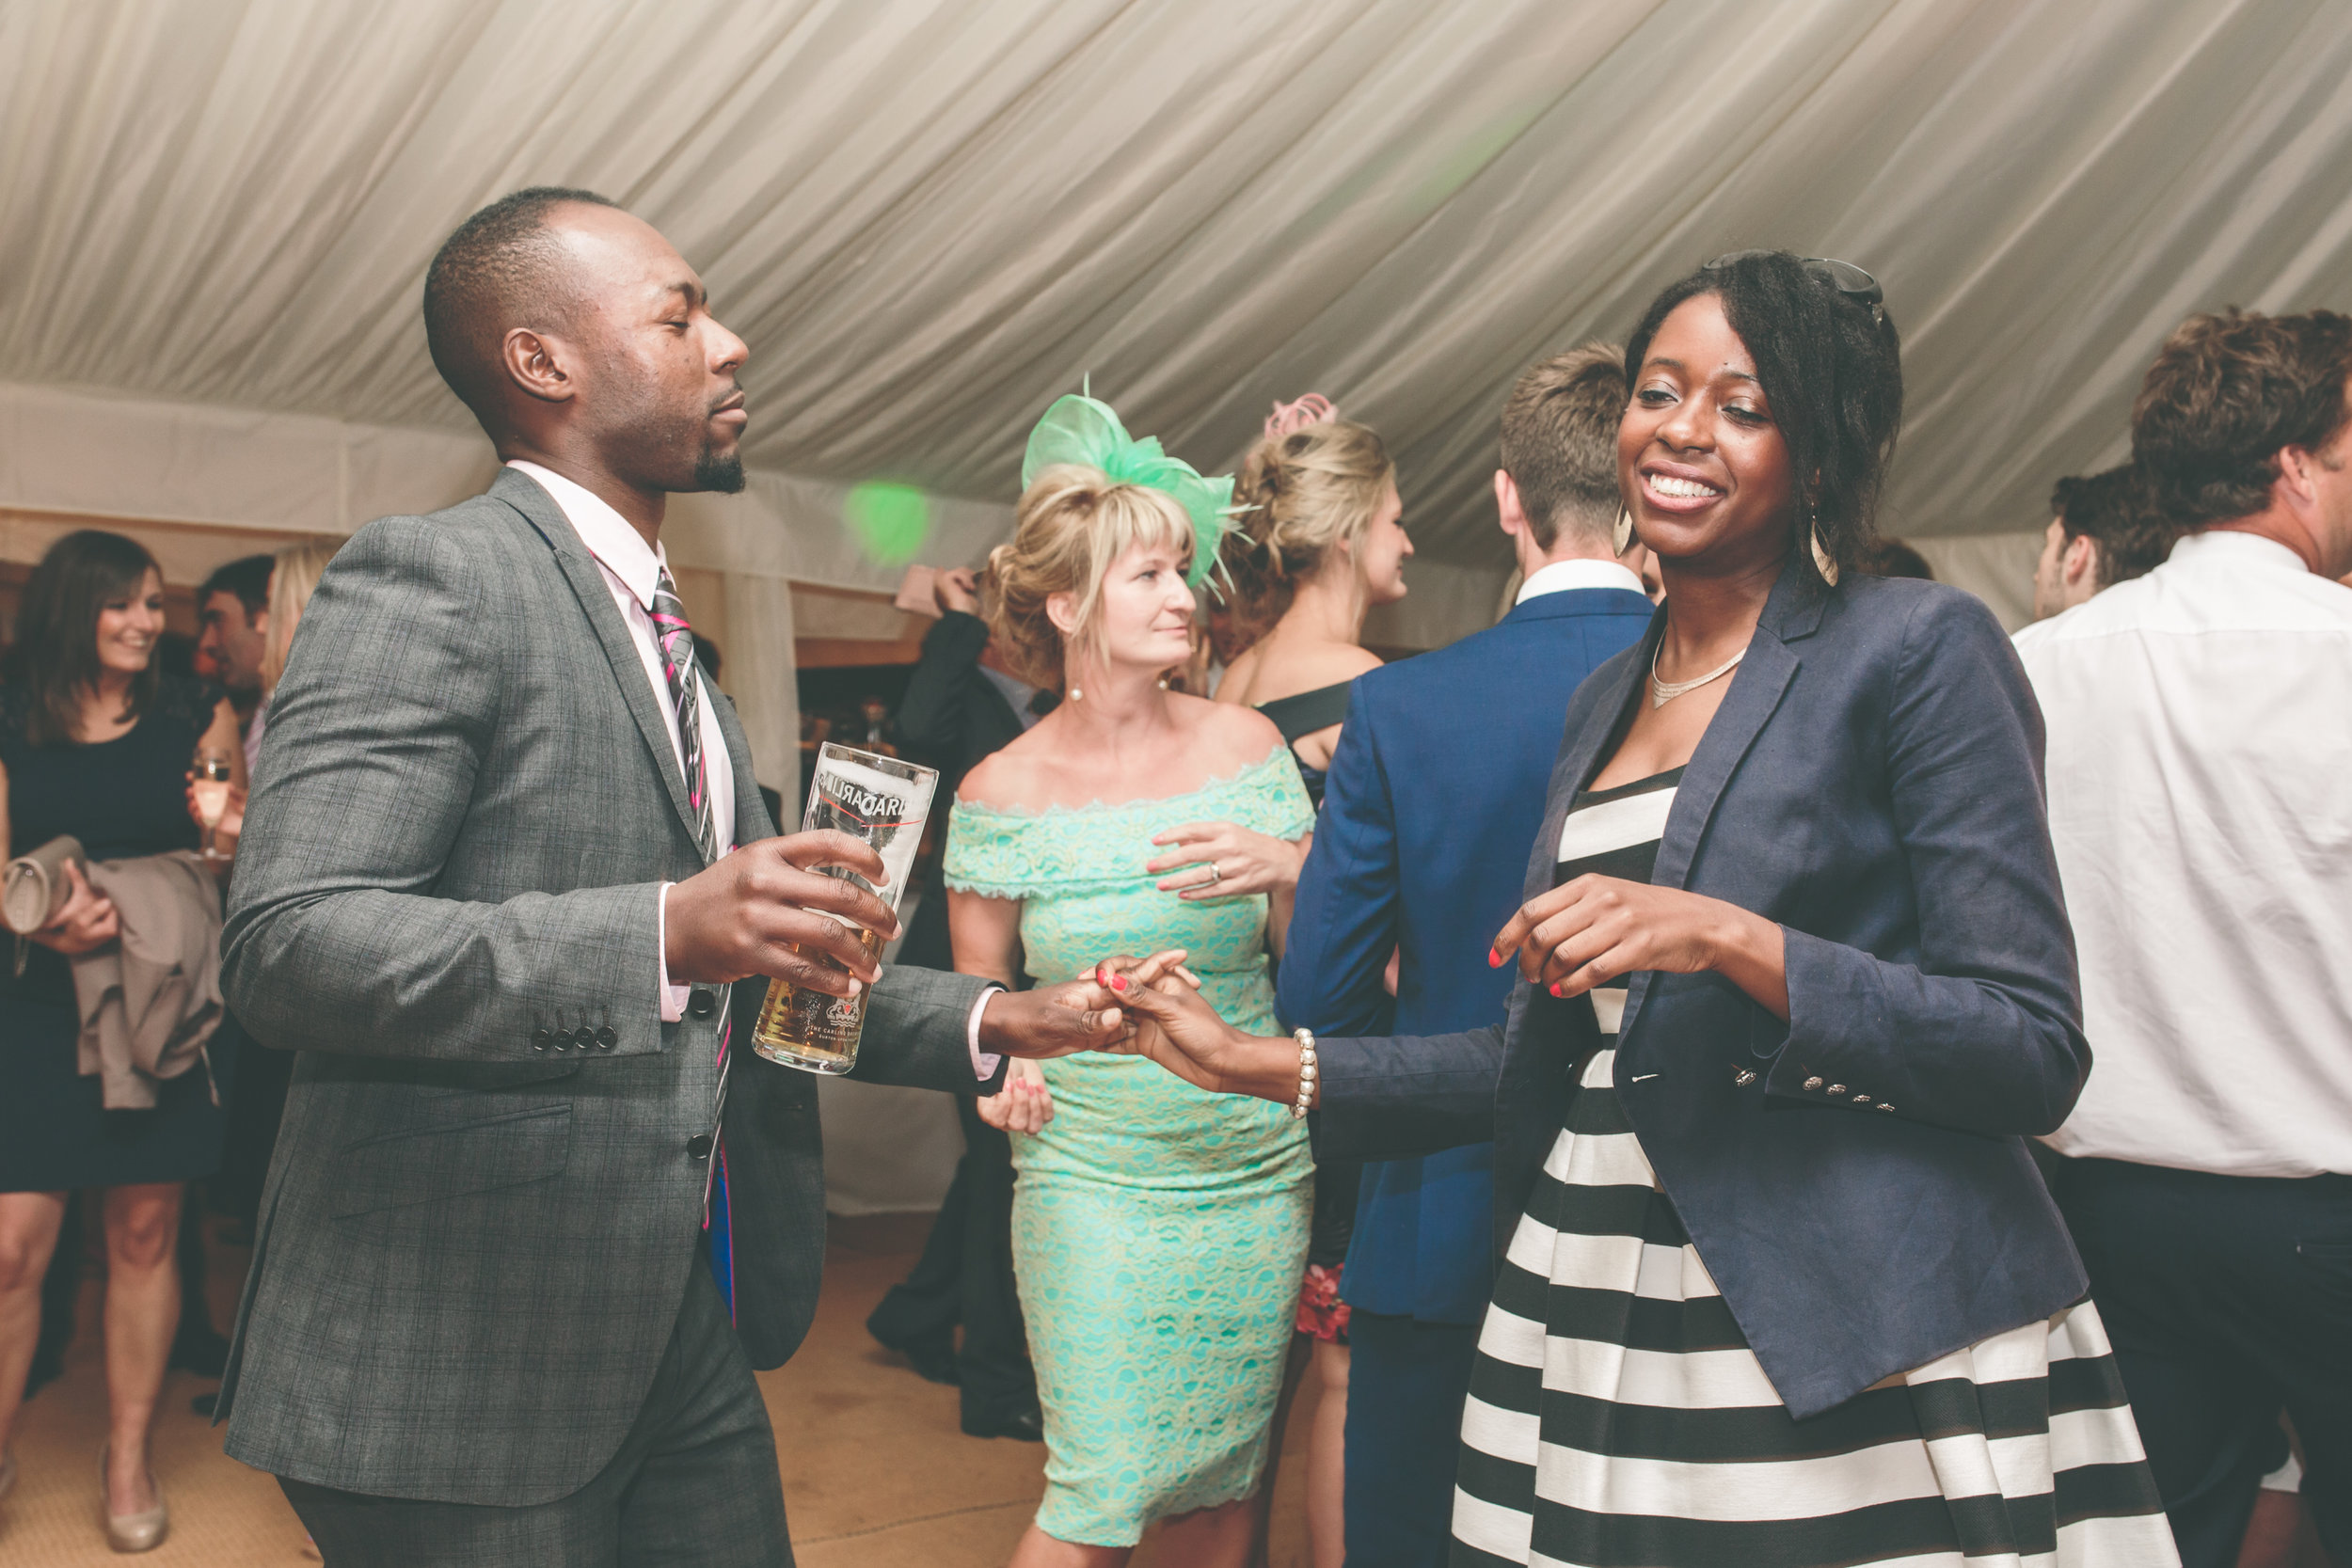 Guests dancing, Shropshire wedding photographer